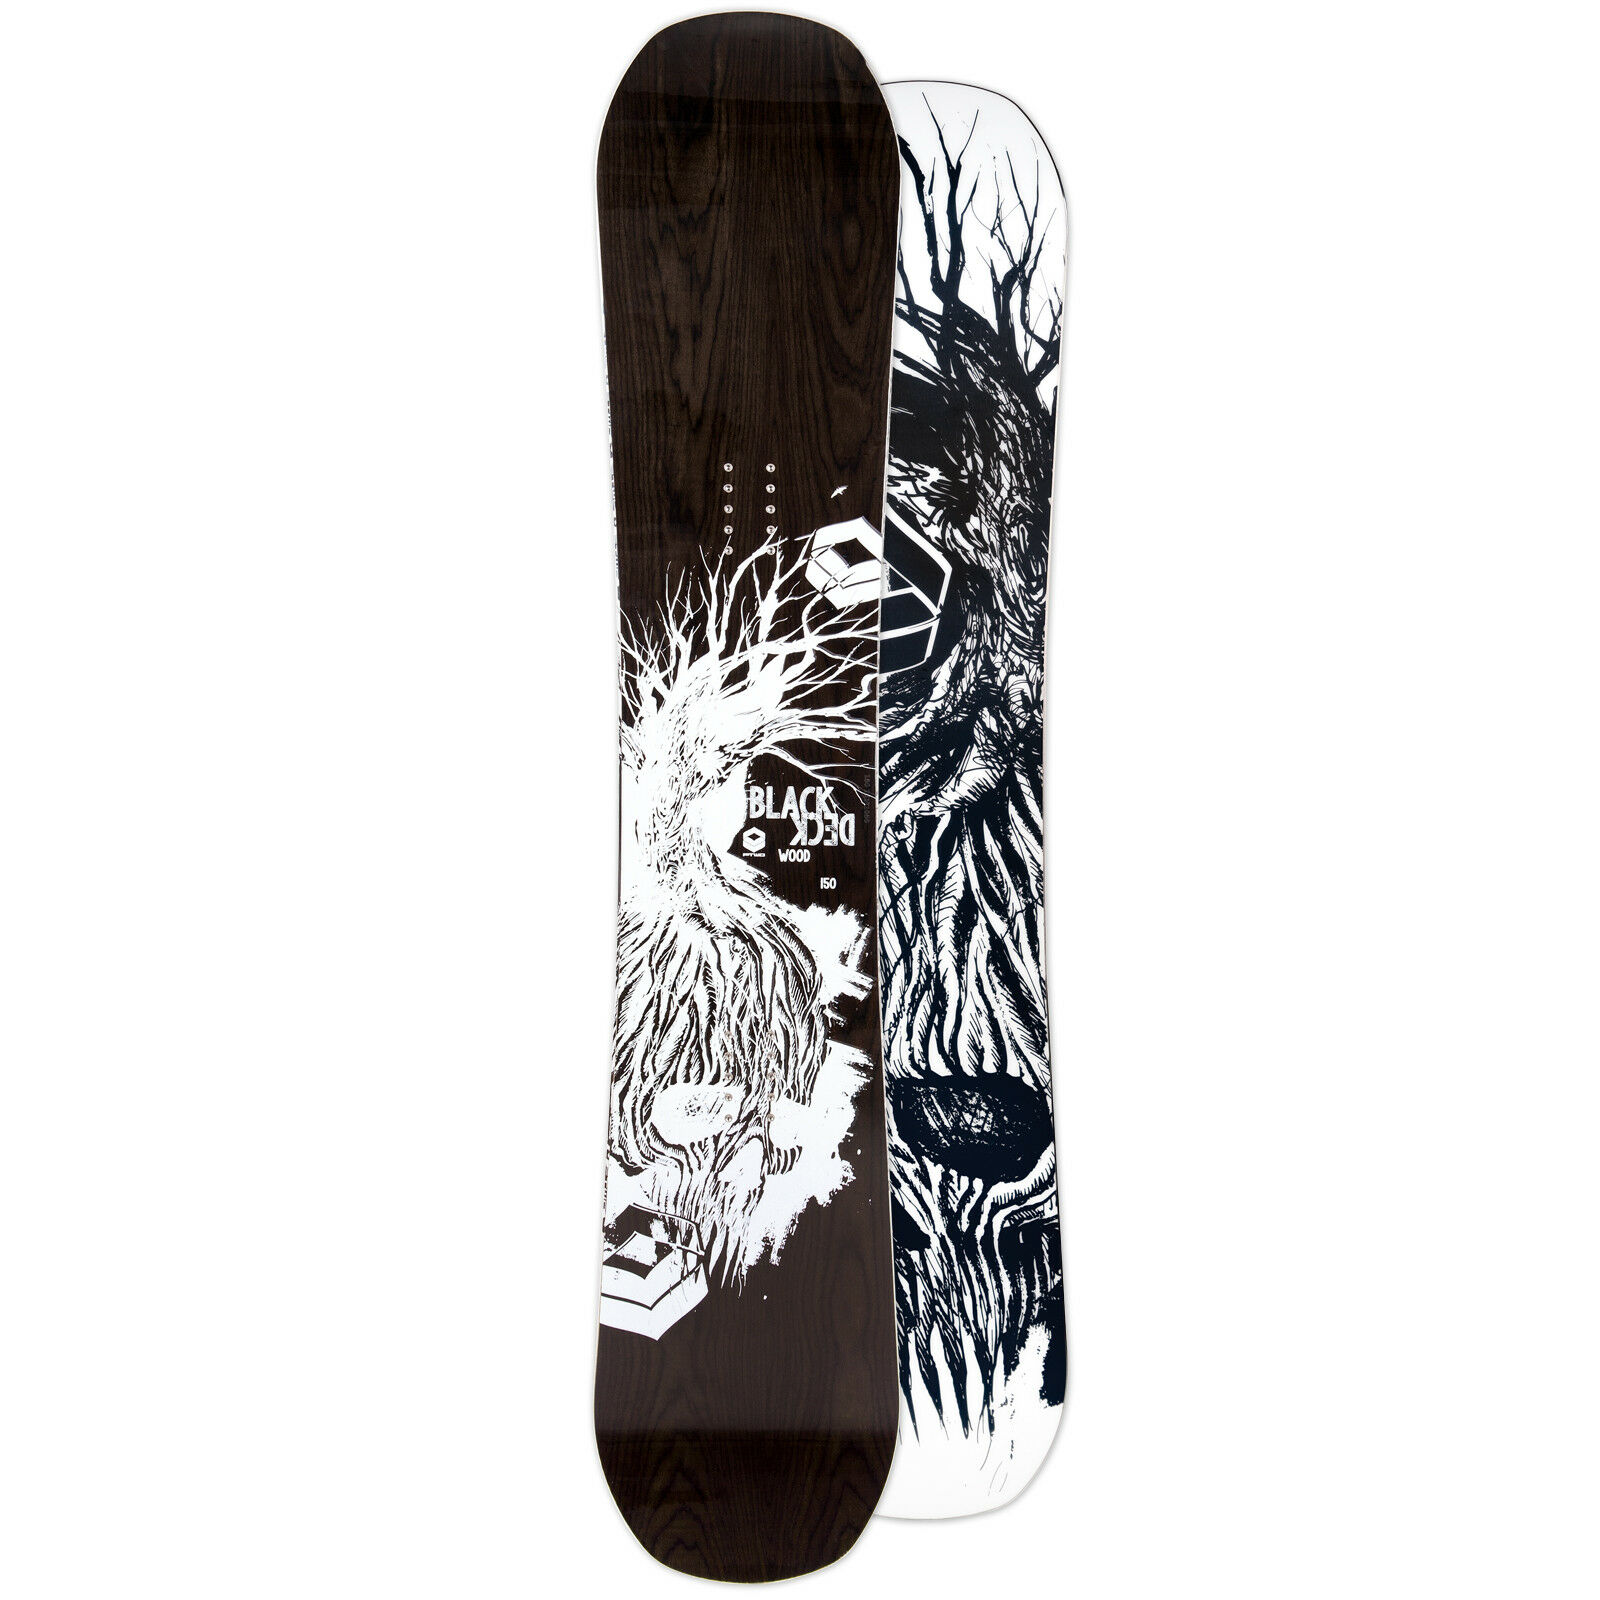 Ftwo Hombre Freestyle Snowboard Cubierta Negra Wood 2019 150cm Doble Camber